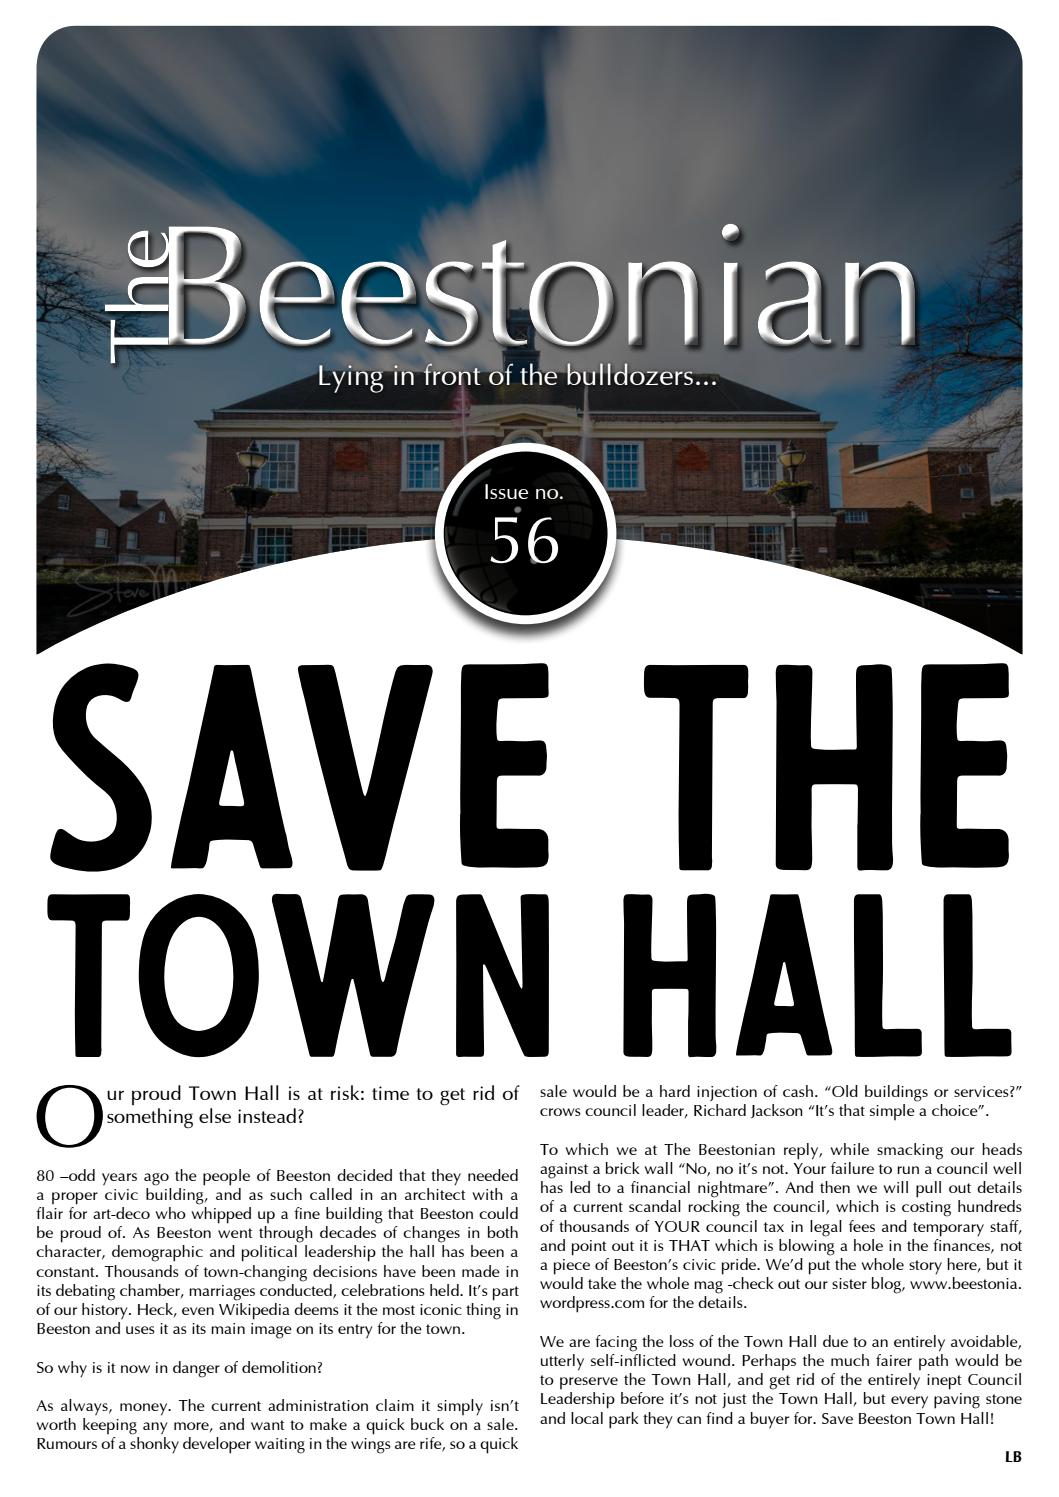 Beestonian 56 by The Beestonian - issuu